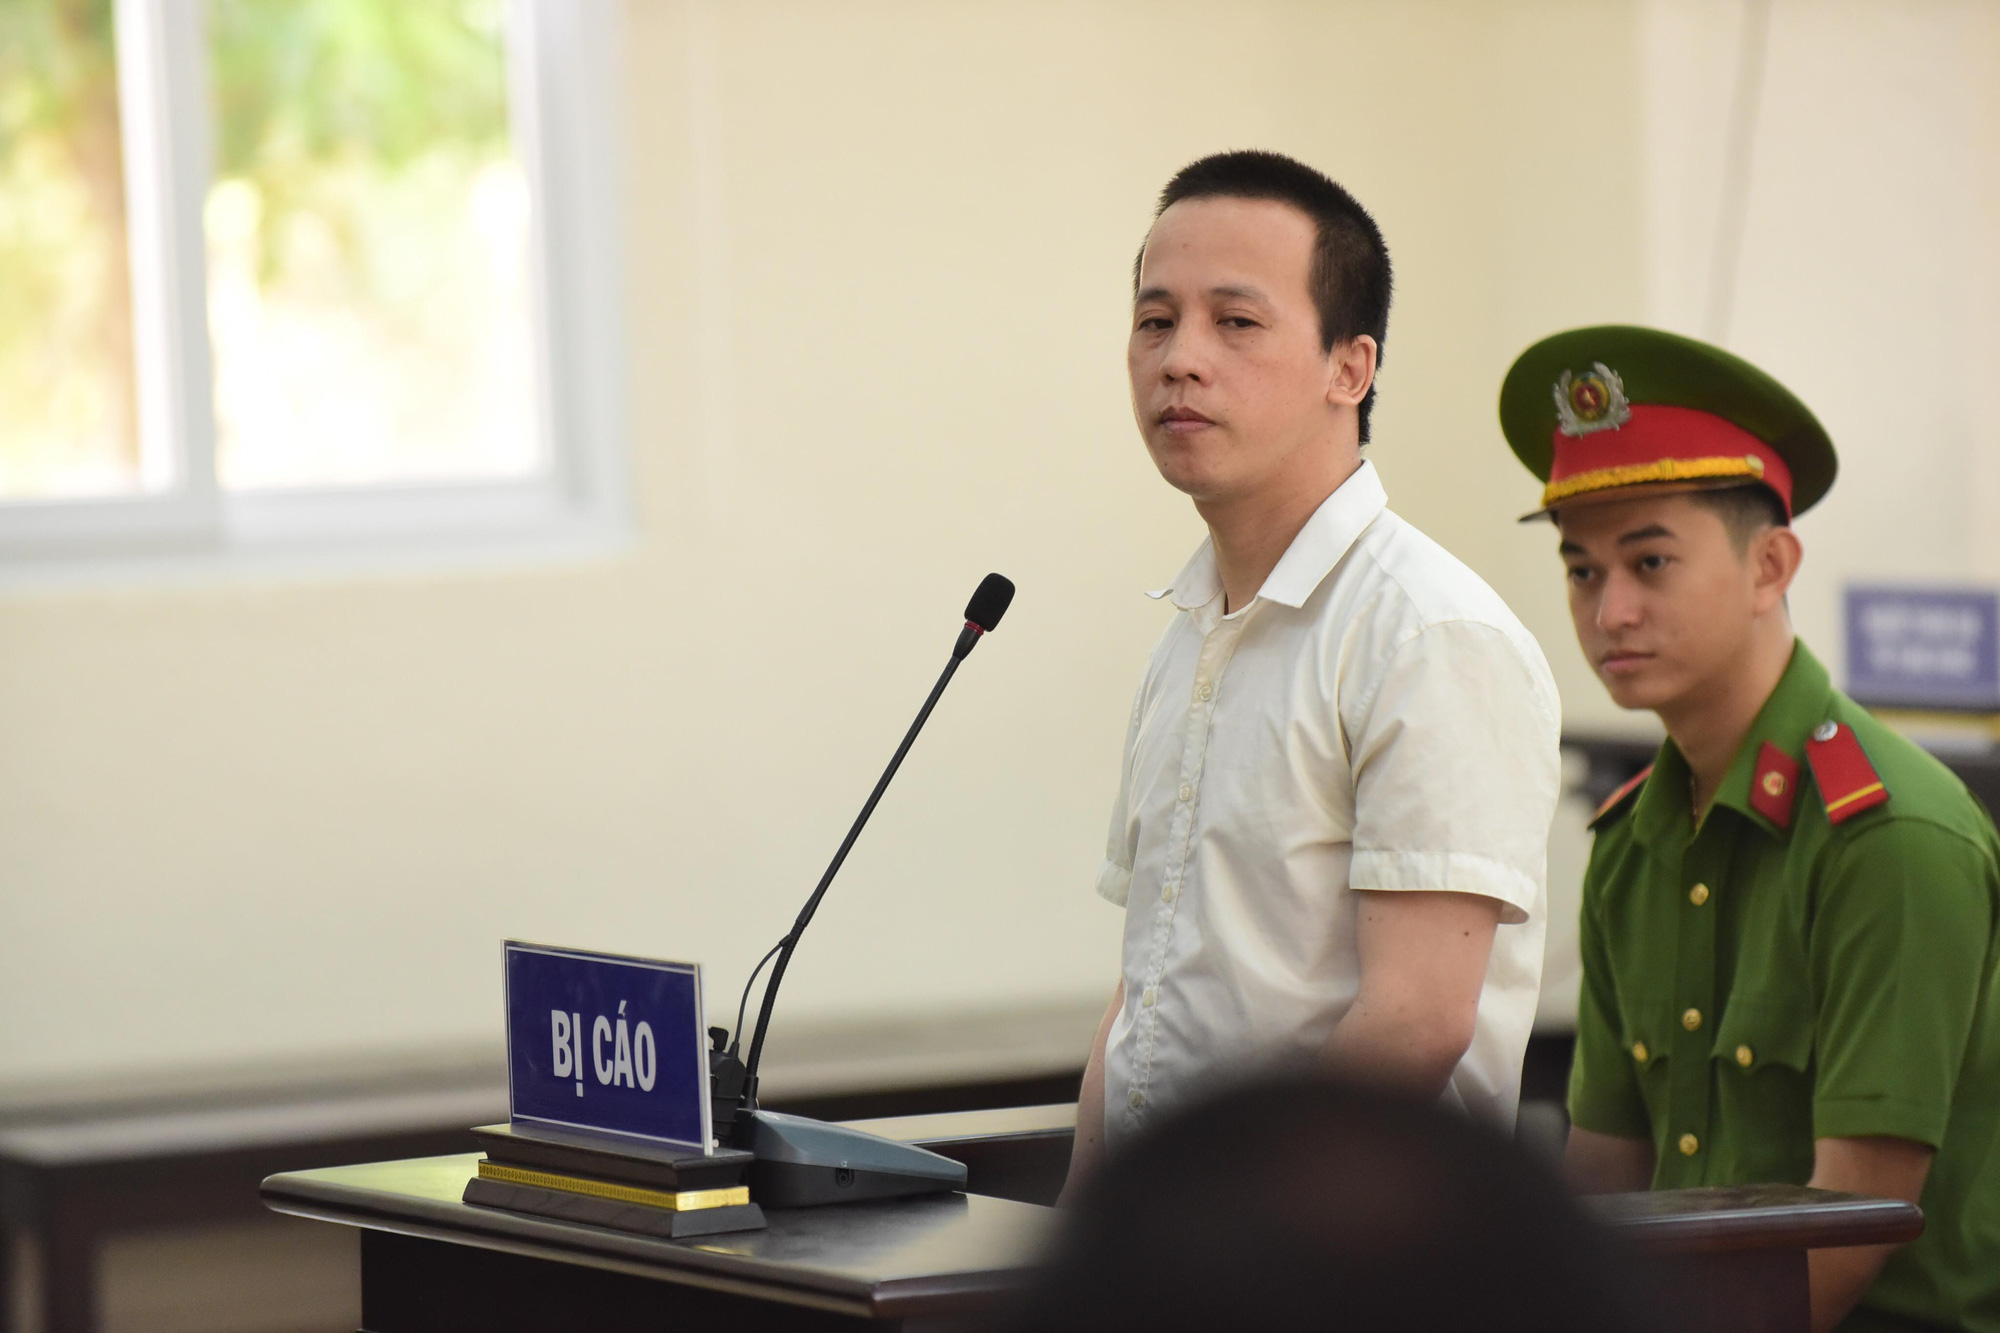 Vietnam man gets death for murdering 3 people in family during robbery attempt